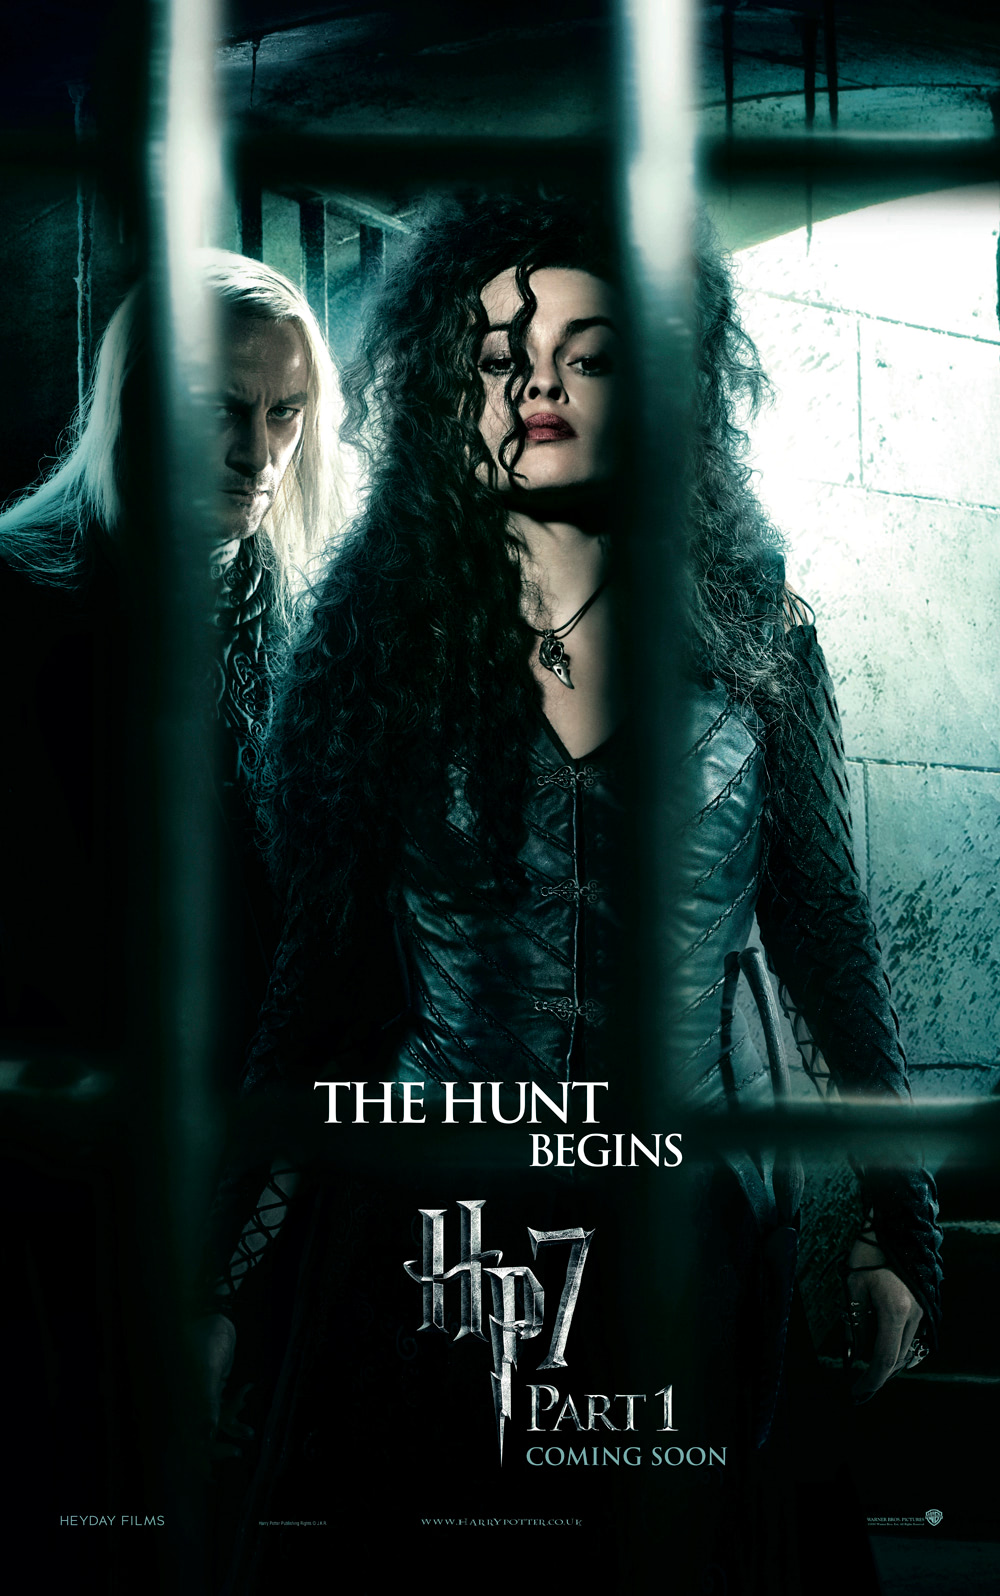 'Deathly Hallows: Part 1' Bellatrix & Lucius poster